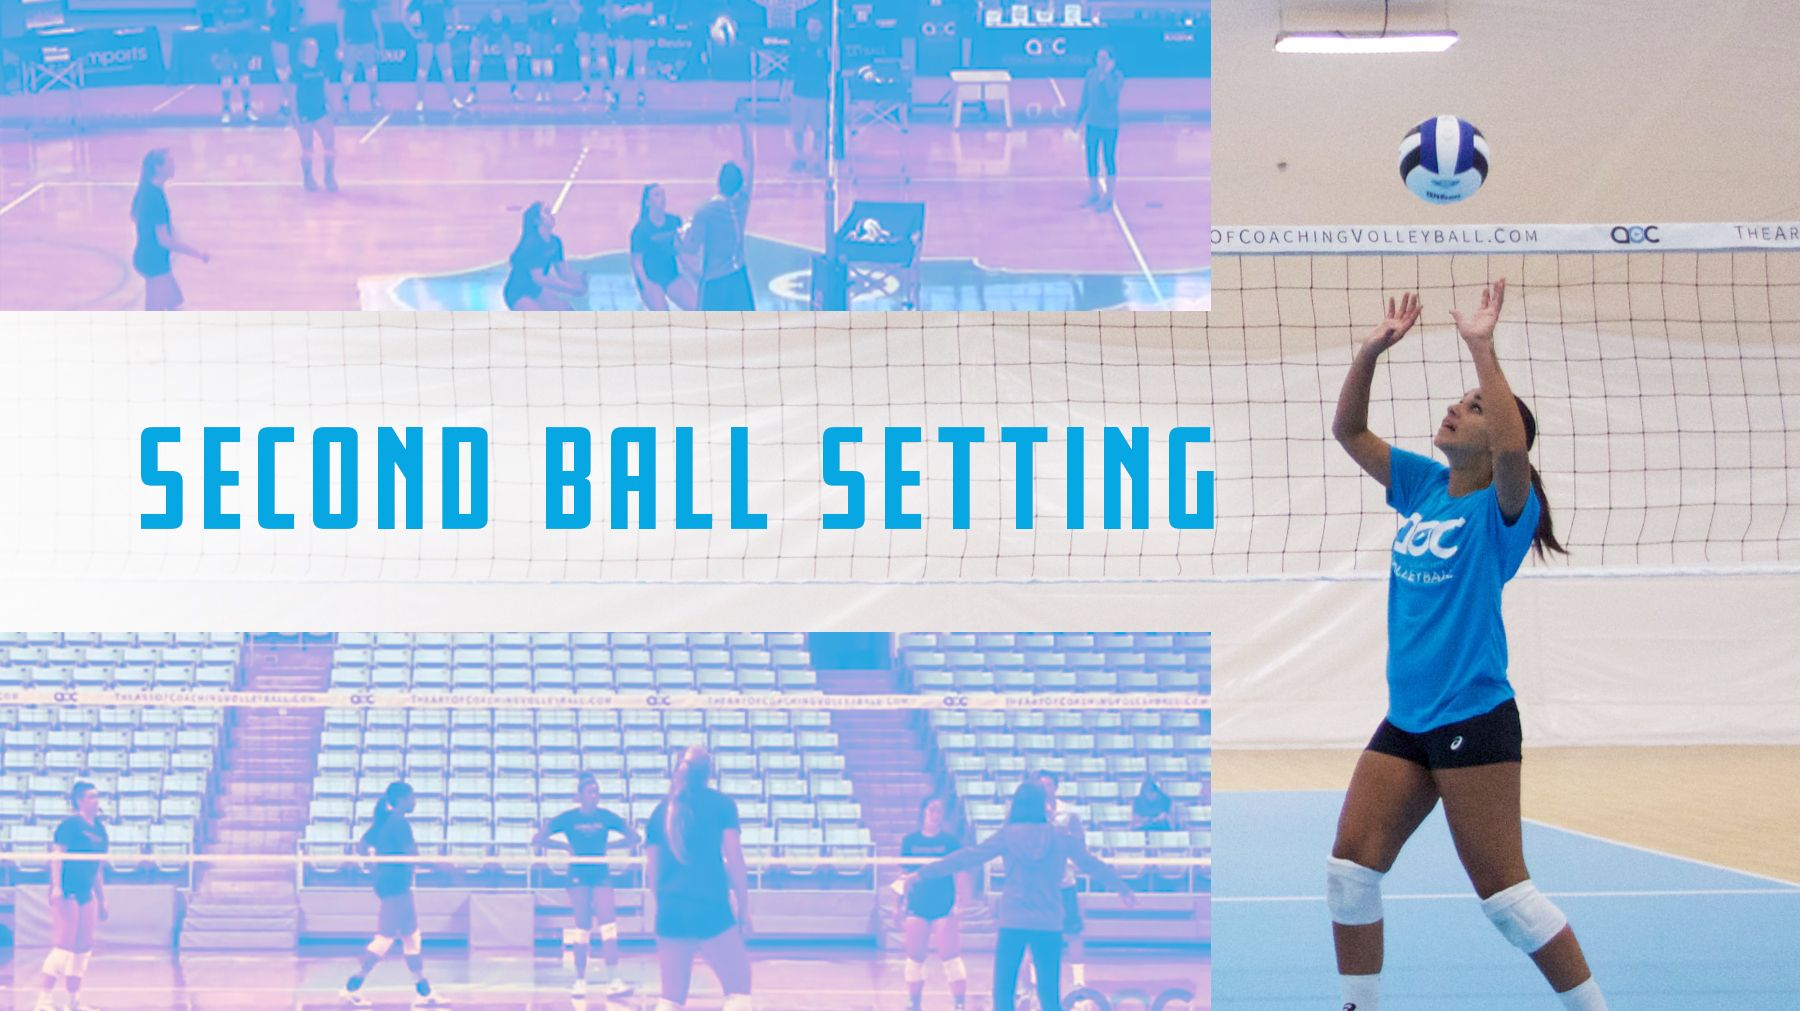 Effective Libero Training Second Ball Setting Drill The Art Of Coaching Volleyball Setting Drills Coaching Volleyball Drill